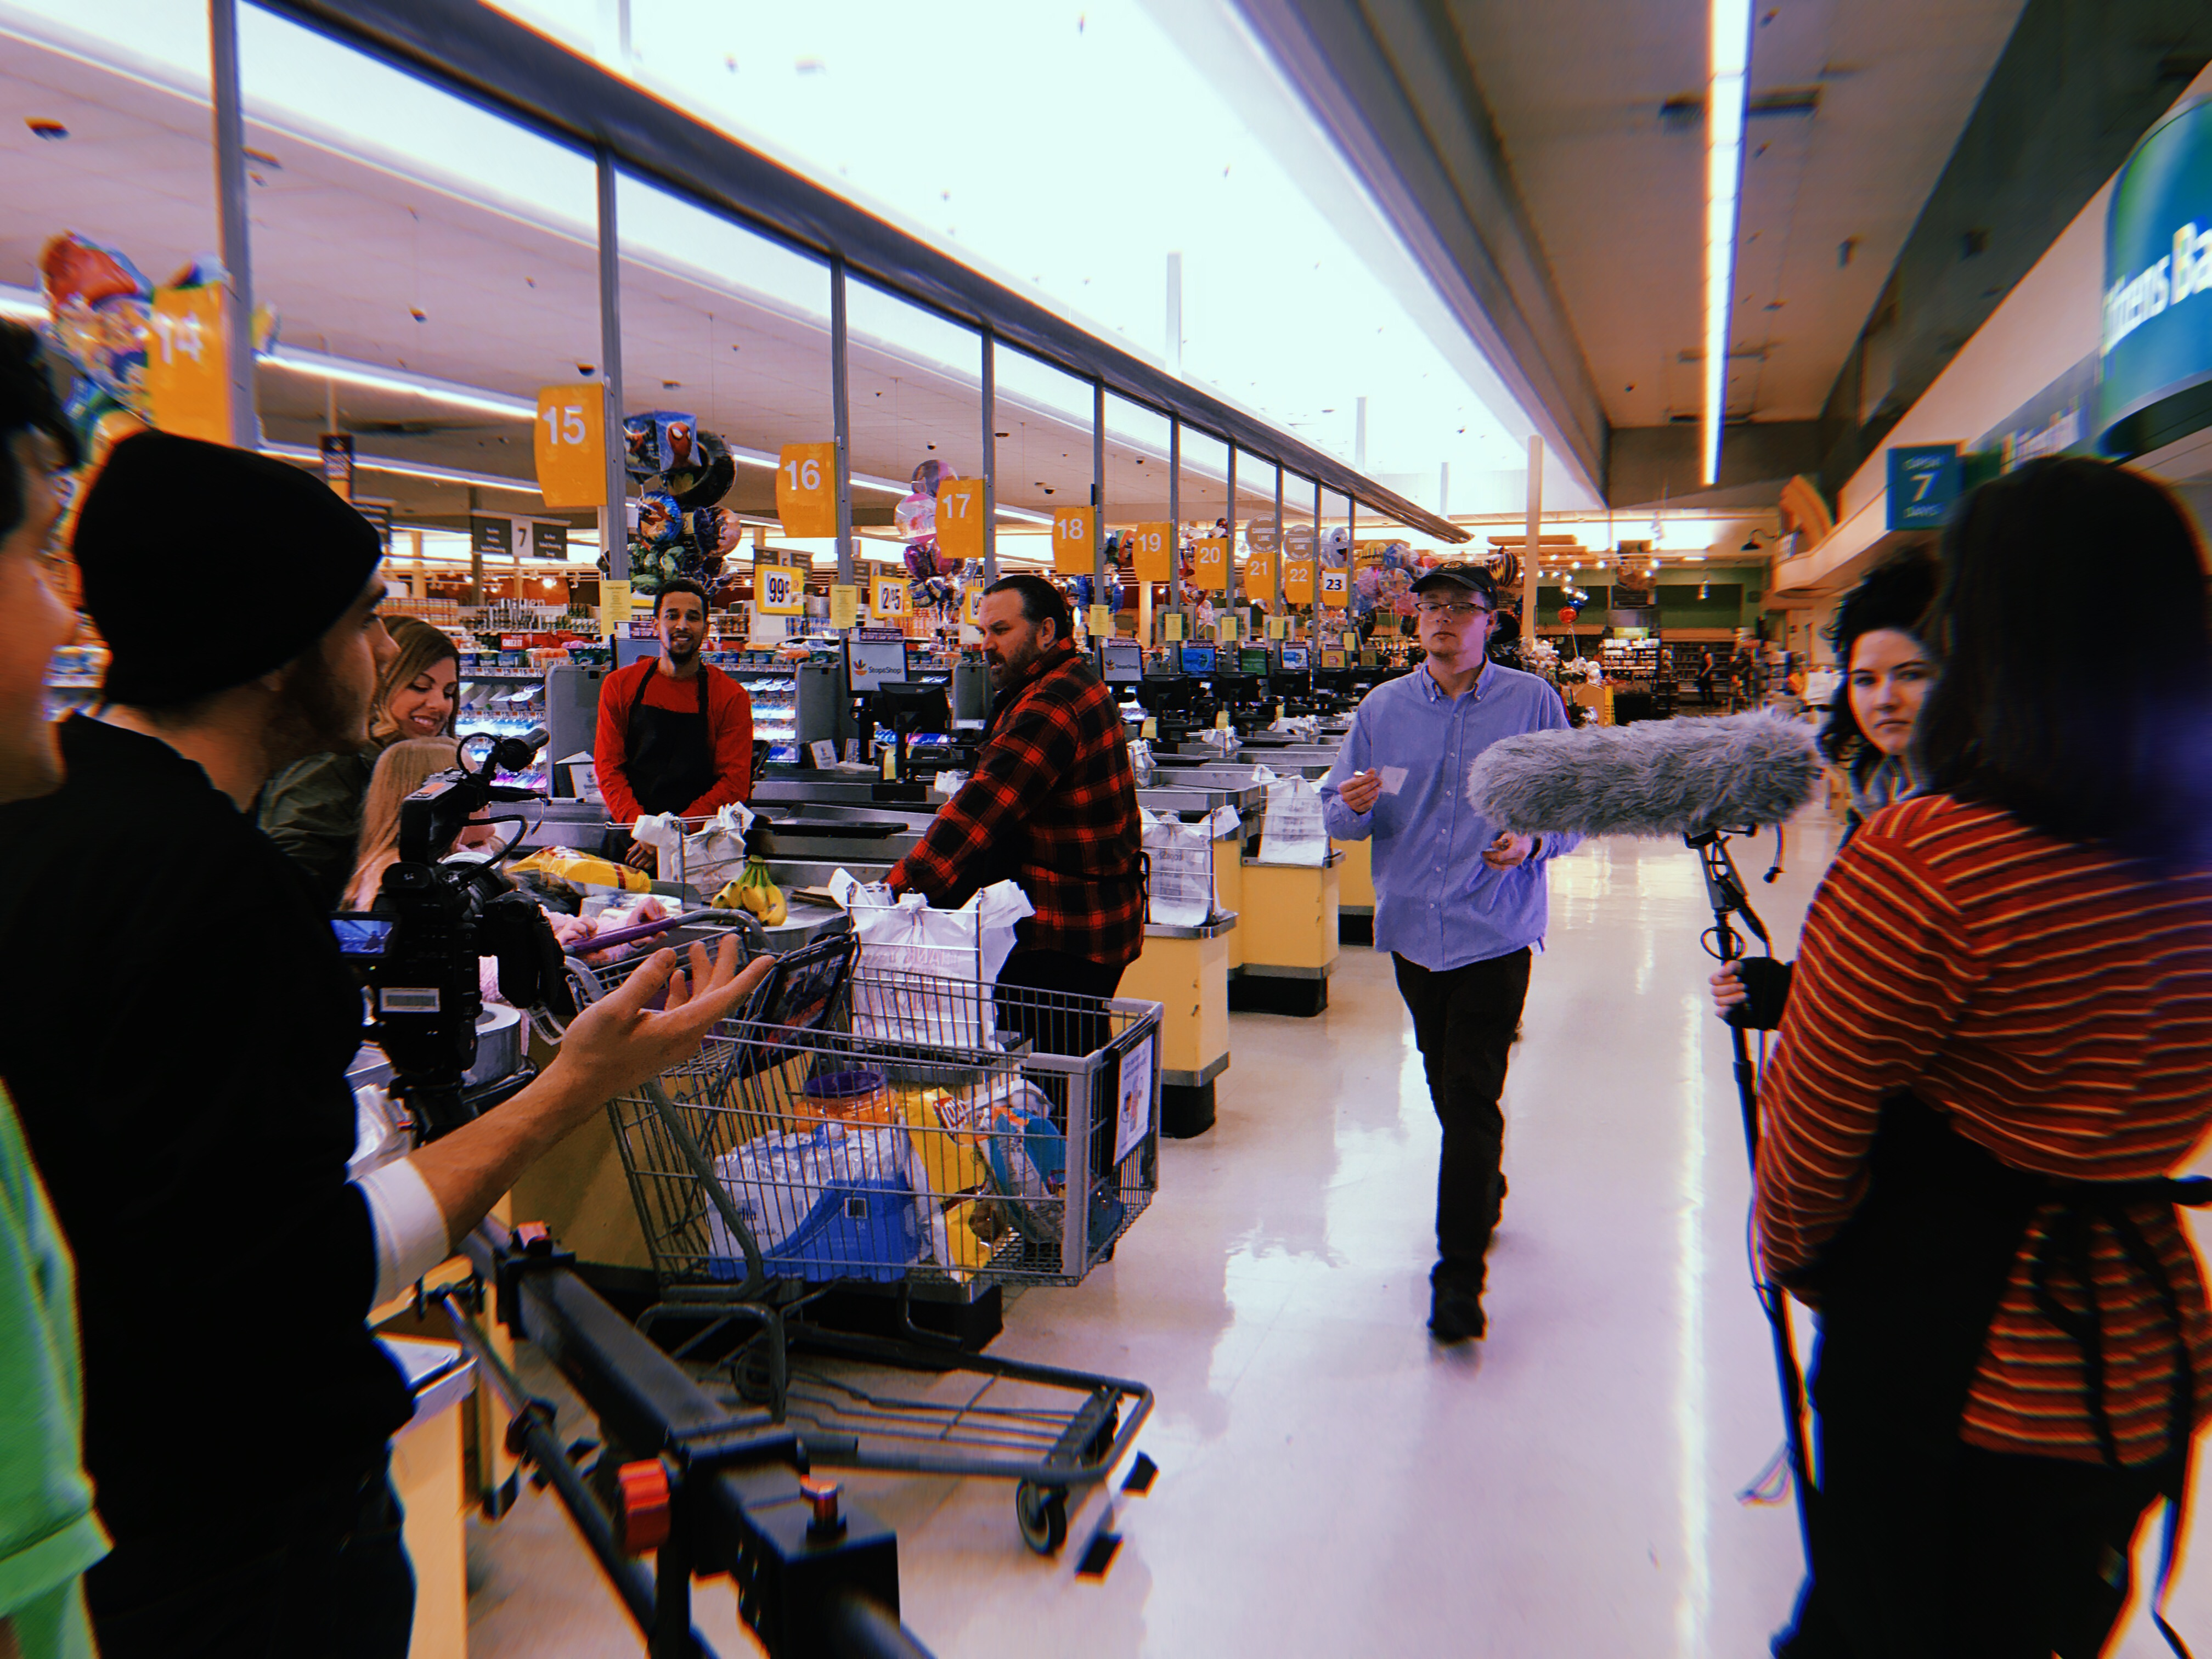 students filming a movie in a grocery store